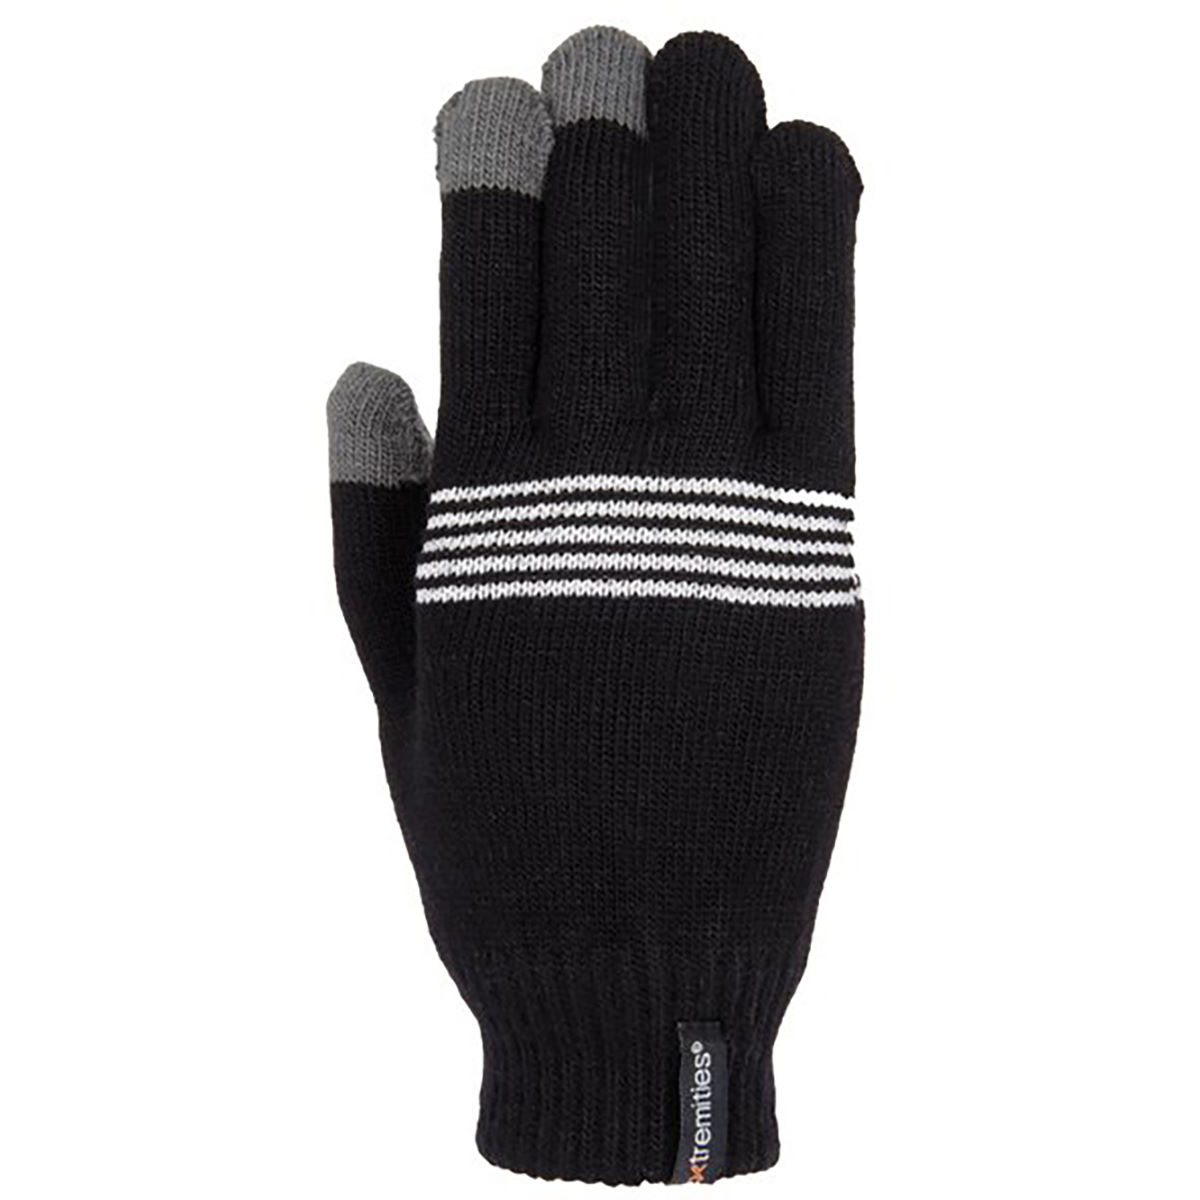 Extremities Extremities Reflective Thinny Touch Glove   Gloves